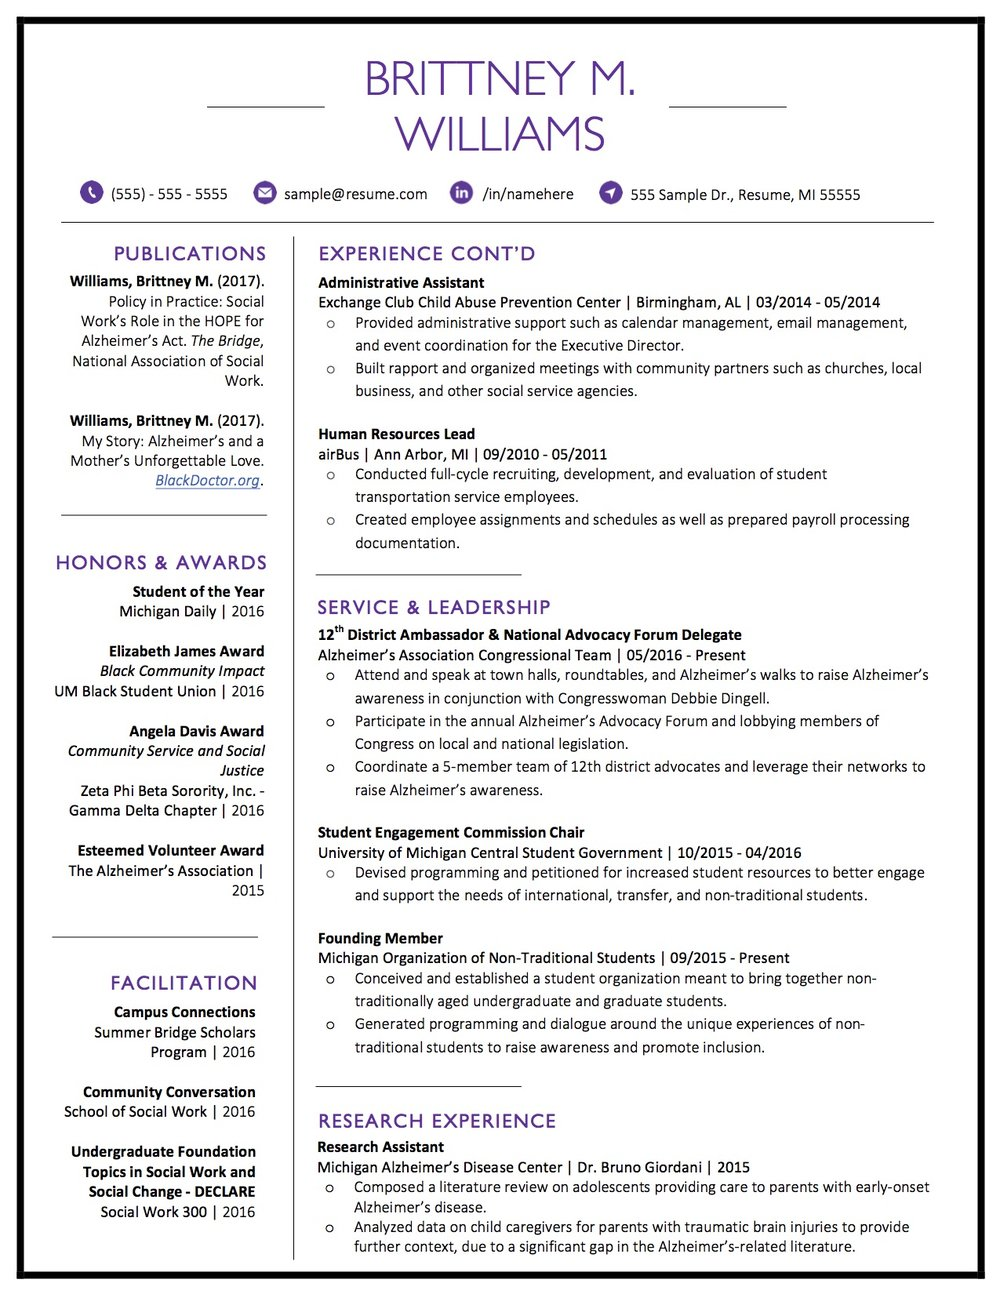 Client Resume #19 pg 2. Click to enlarge.